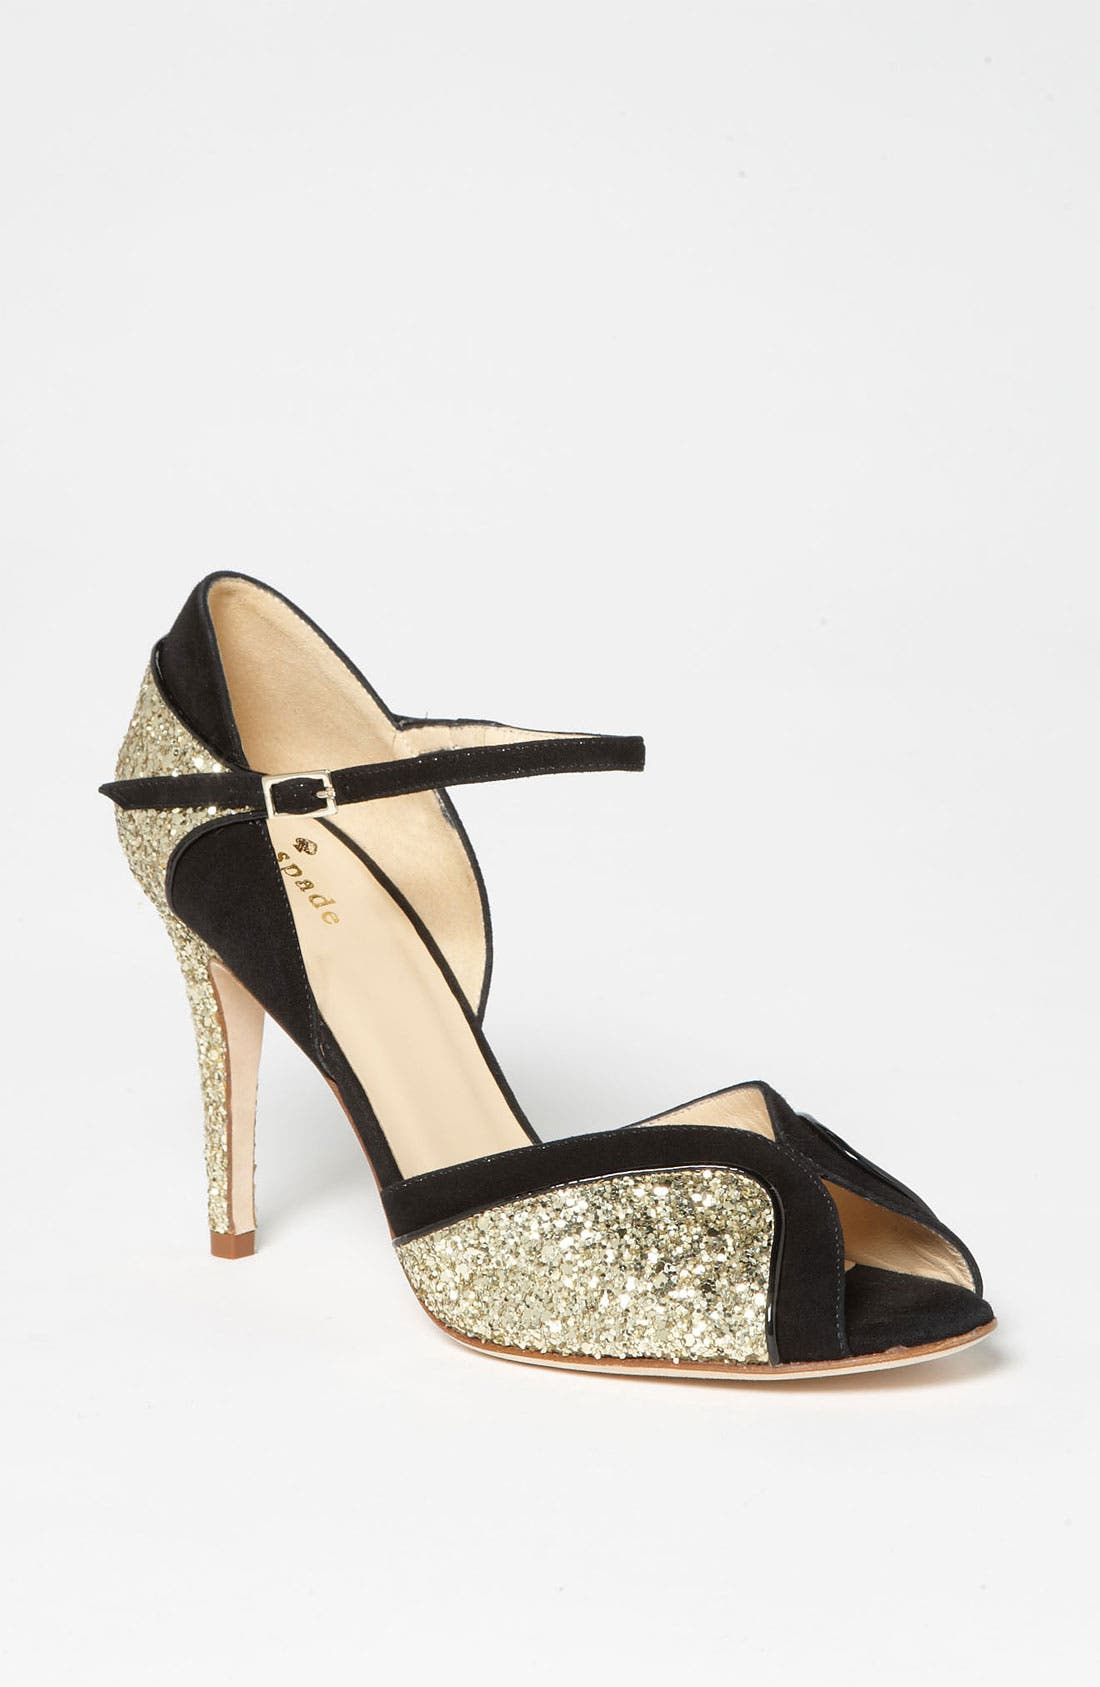 Main Image - kate spade new york 'corinne' sandal